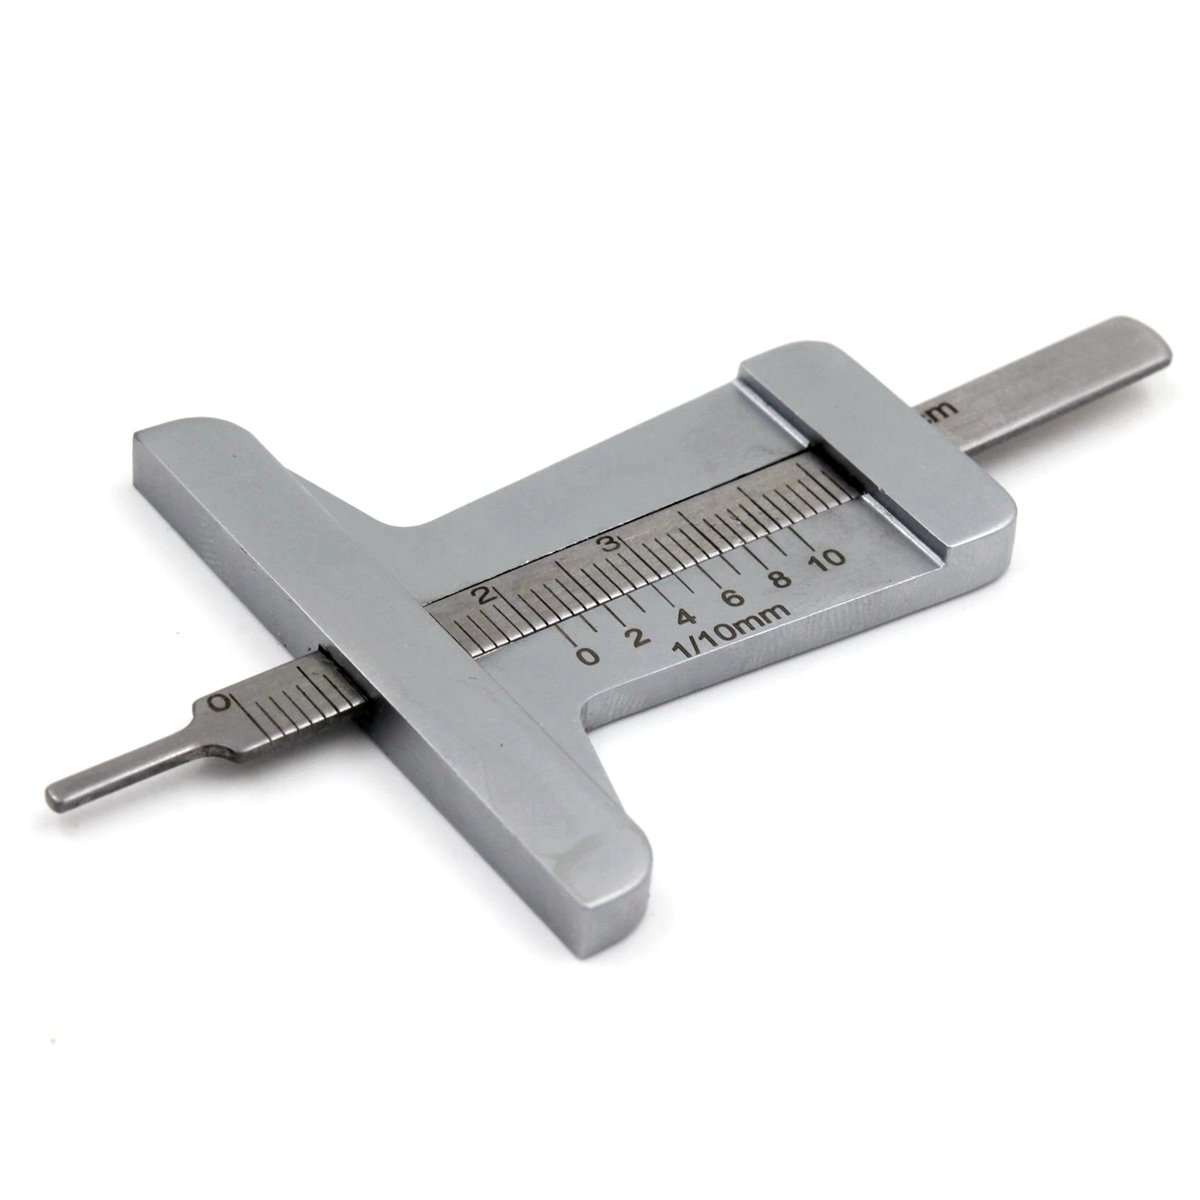 Tyre Tread Depth Gauge Stainless Tester Measuring Tool SY.WS